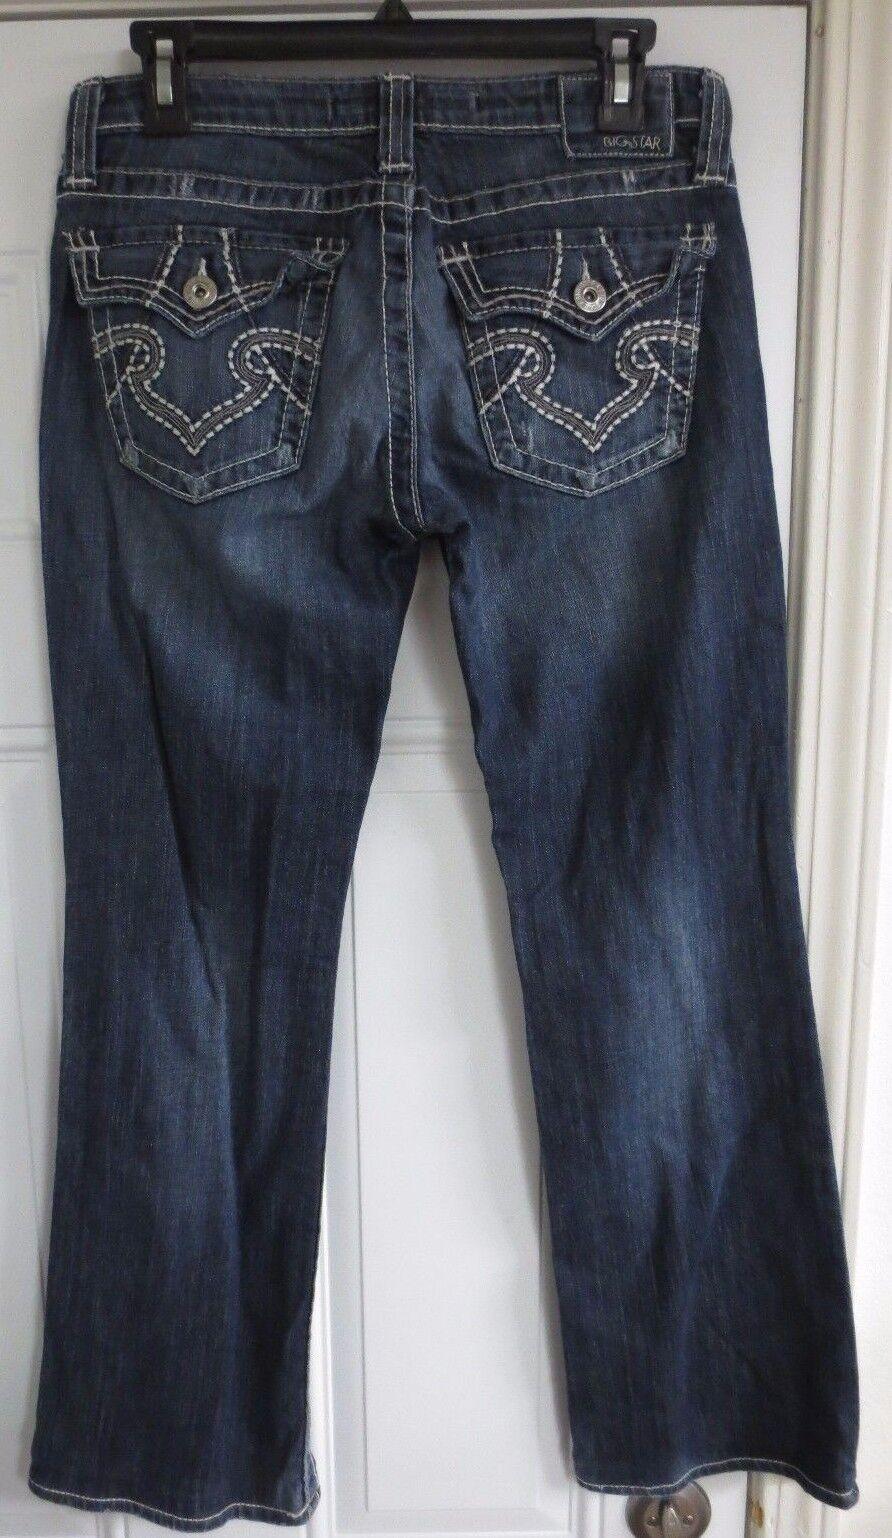 Big Star Remy Jeans Pants bluee Size 29 x 29 Cotton Stretch Low Rise Boot Cut